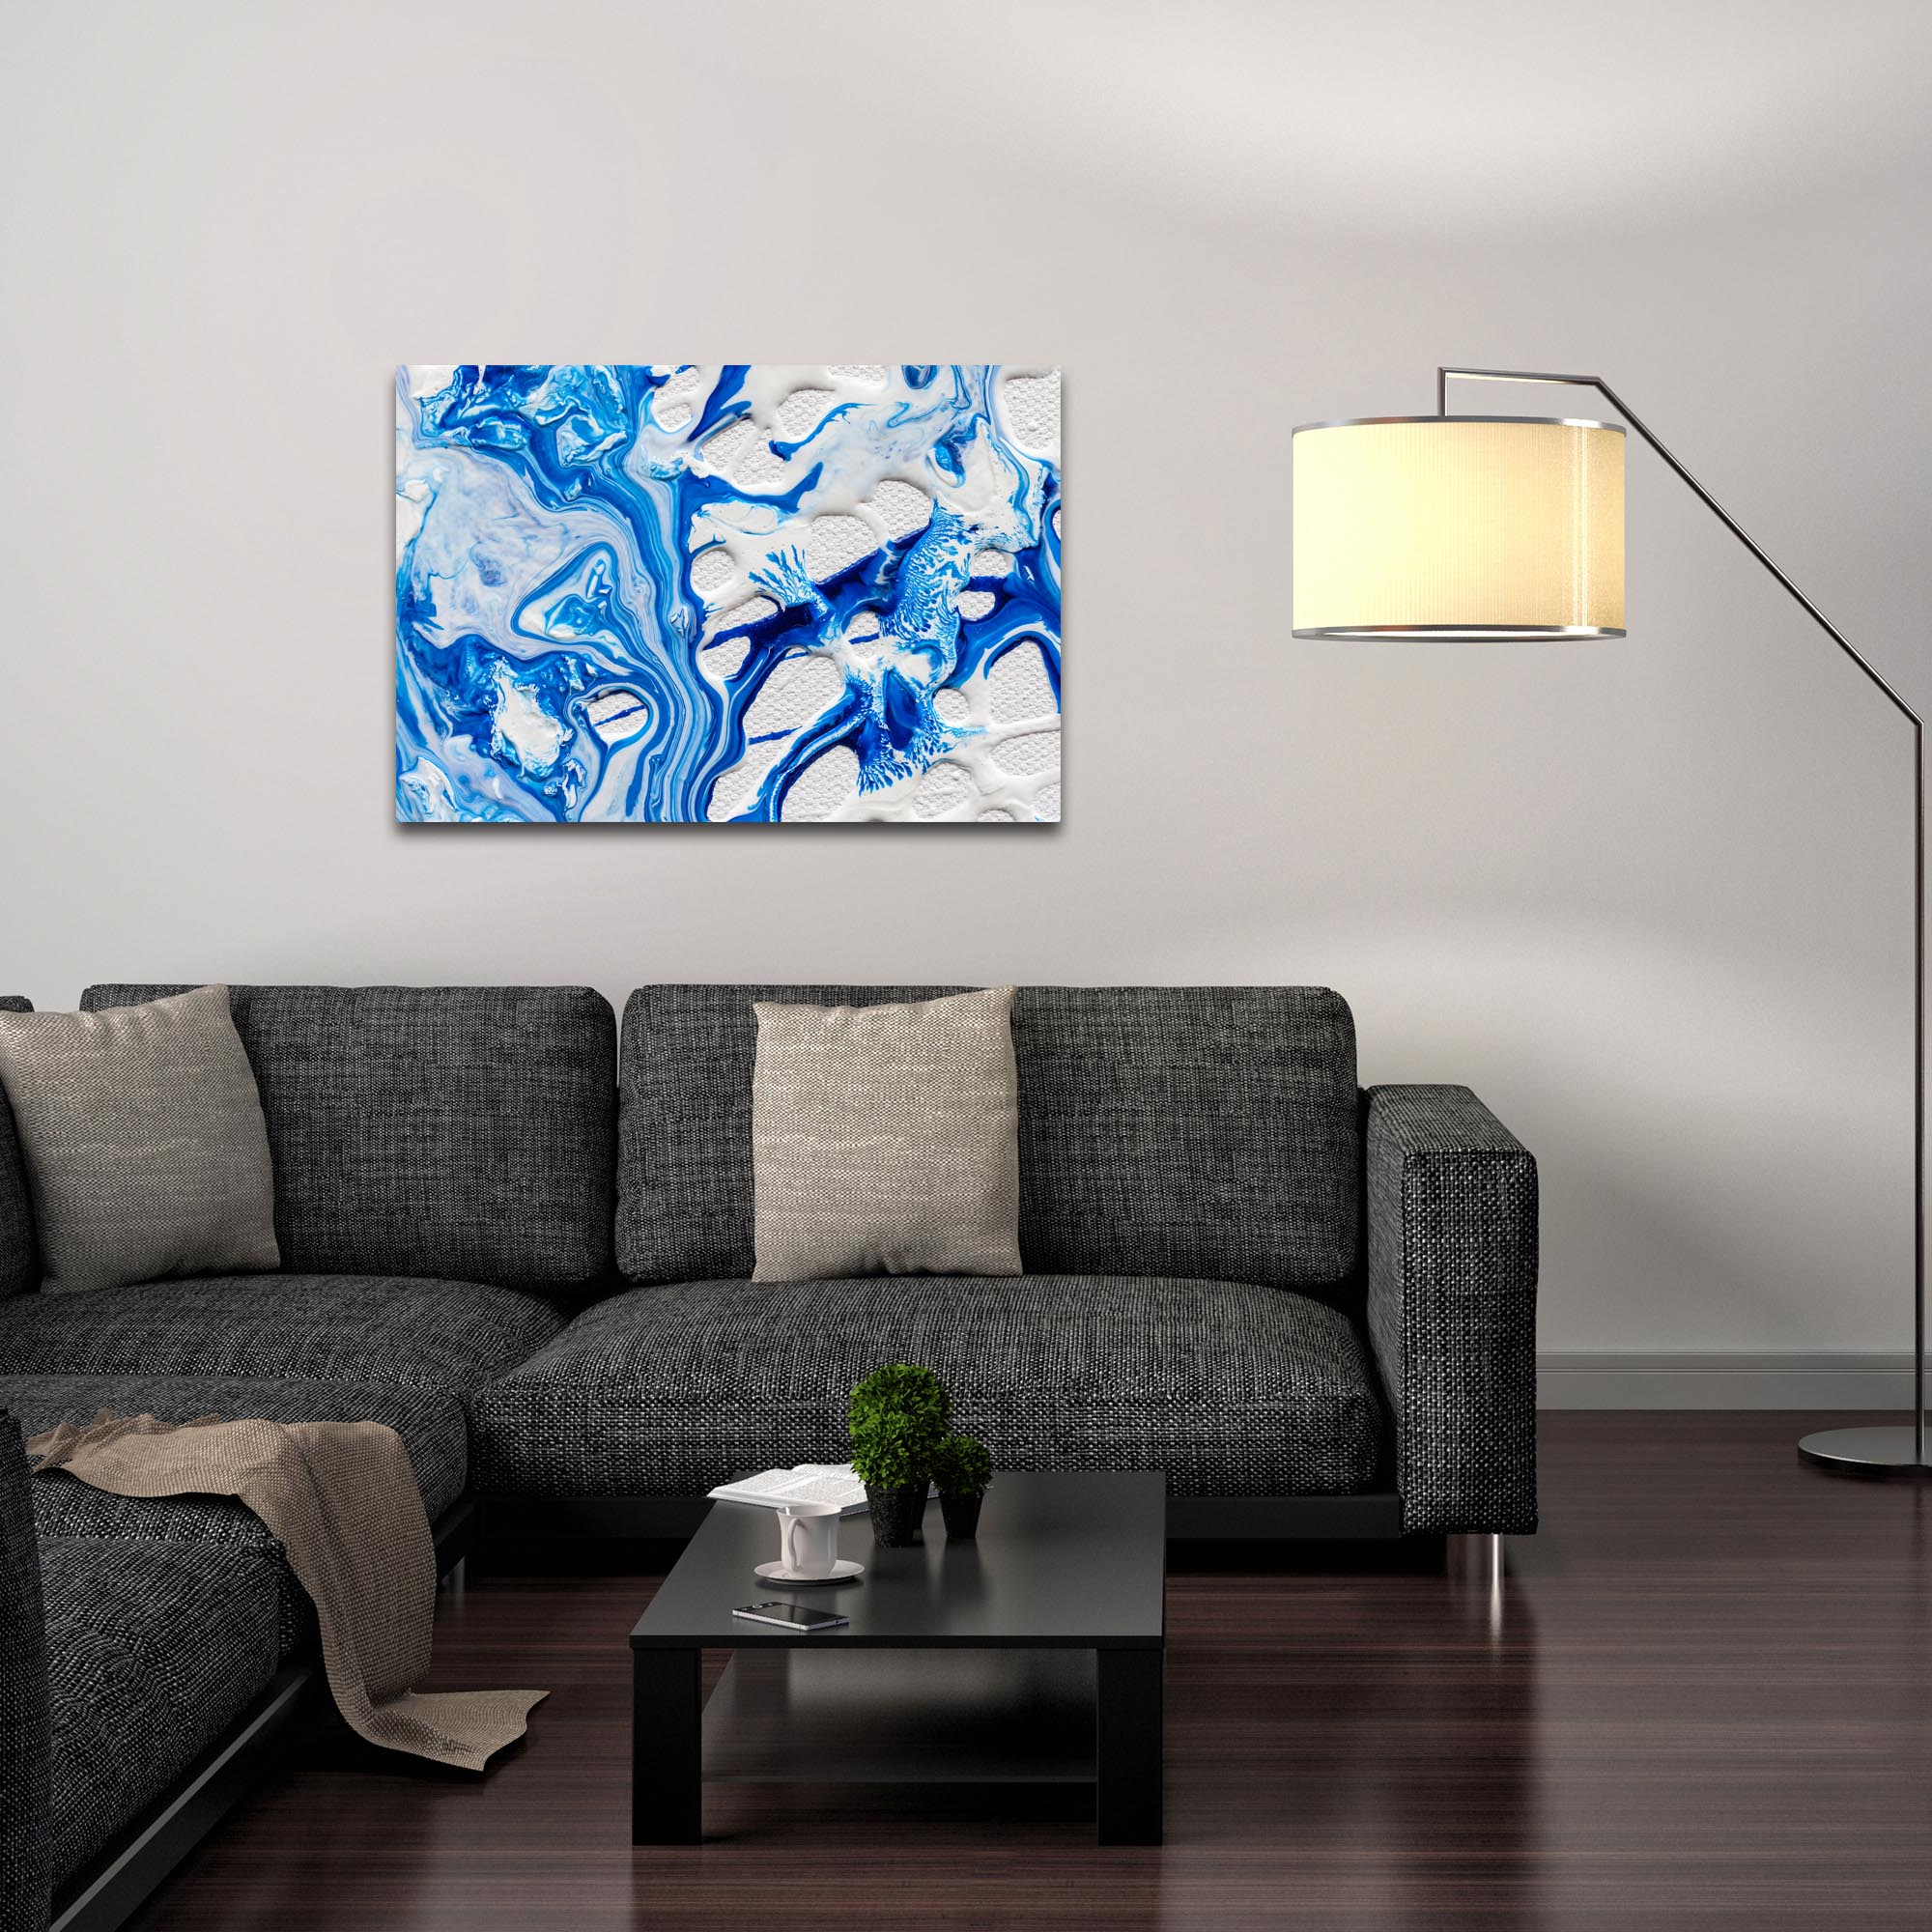 Abstract Wall Art 'Coastal Waters 4' - Colorful Urban Decor on Metal or Plexiglass - Lifestyle View